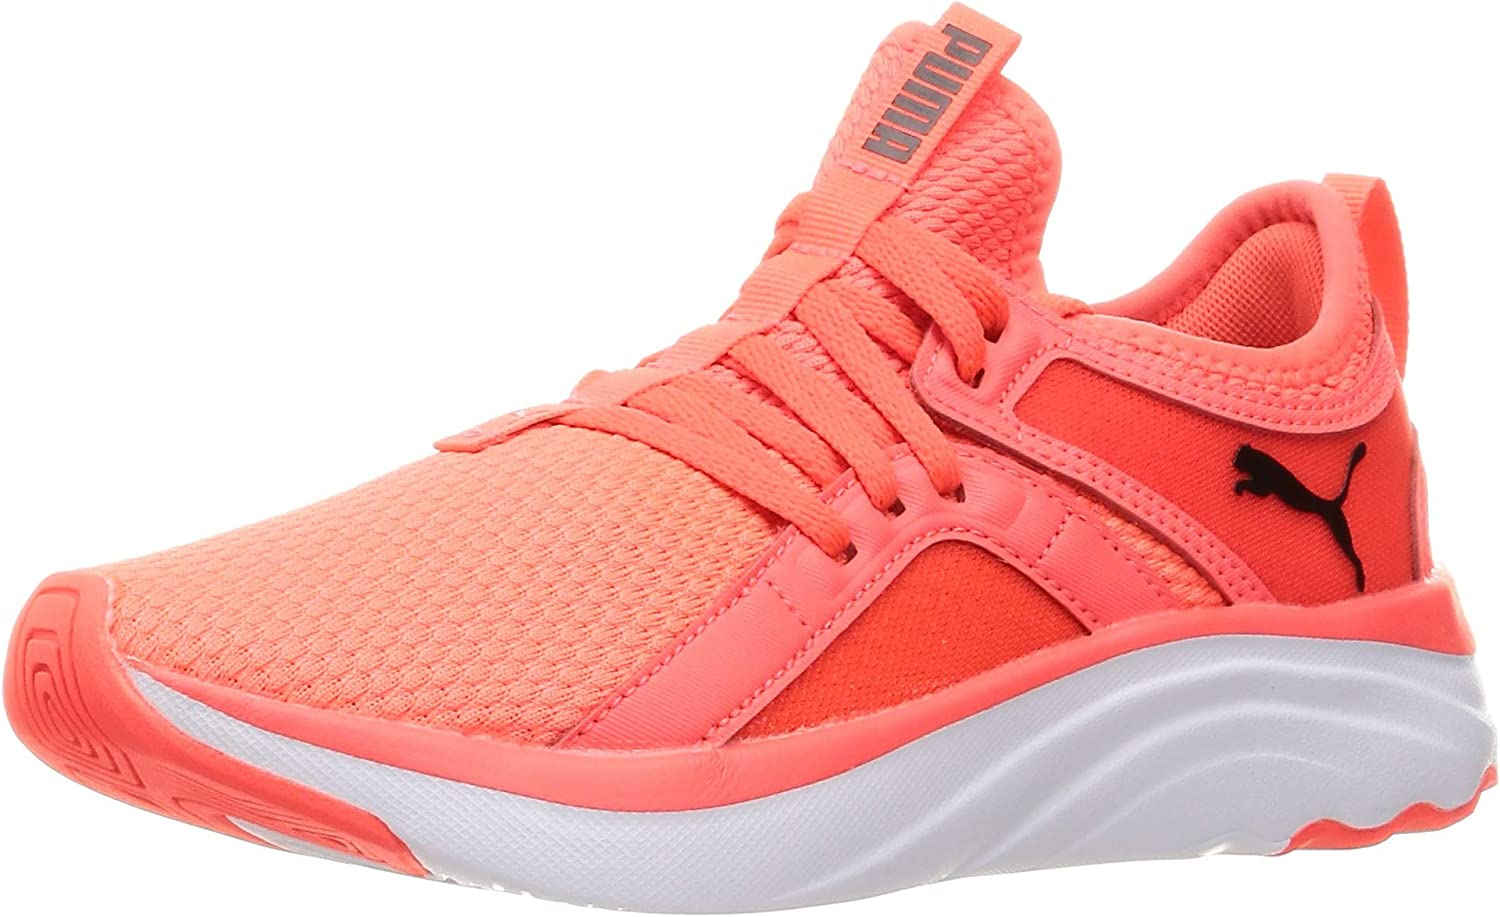 67% OFF Max 50% OFF of fixed price PUMA womens Running